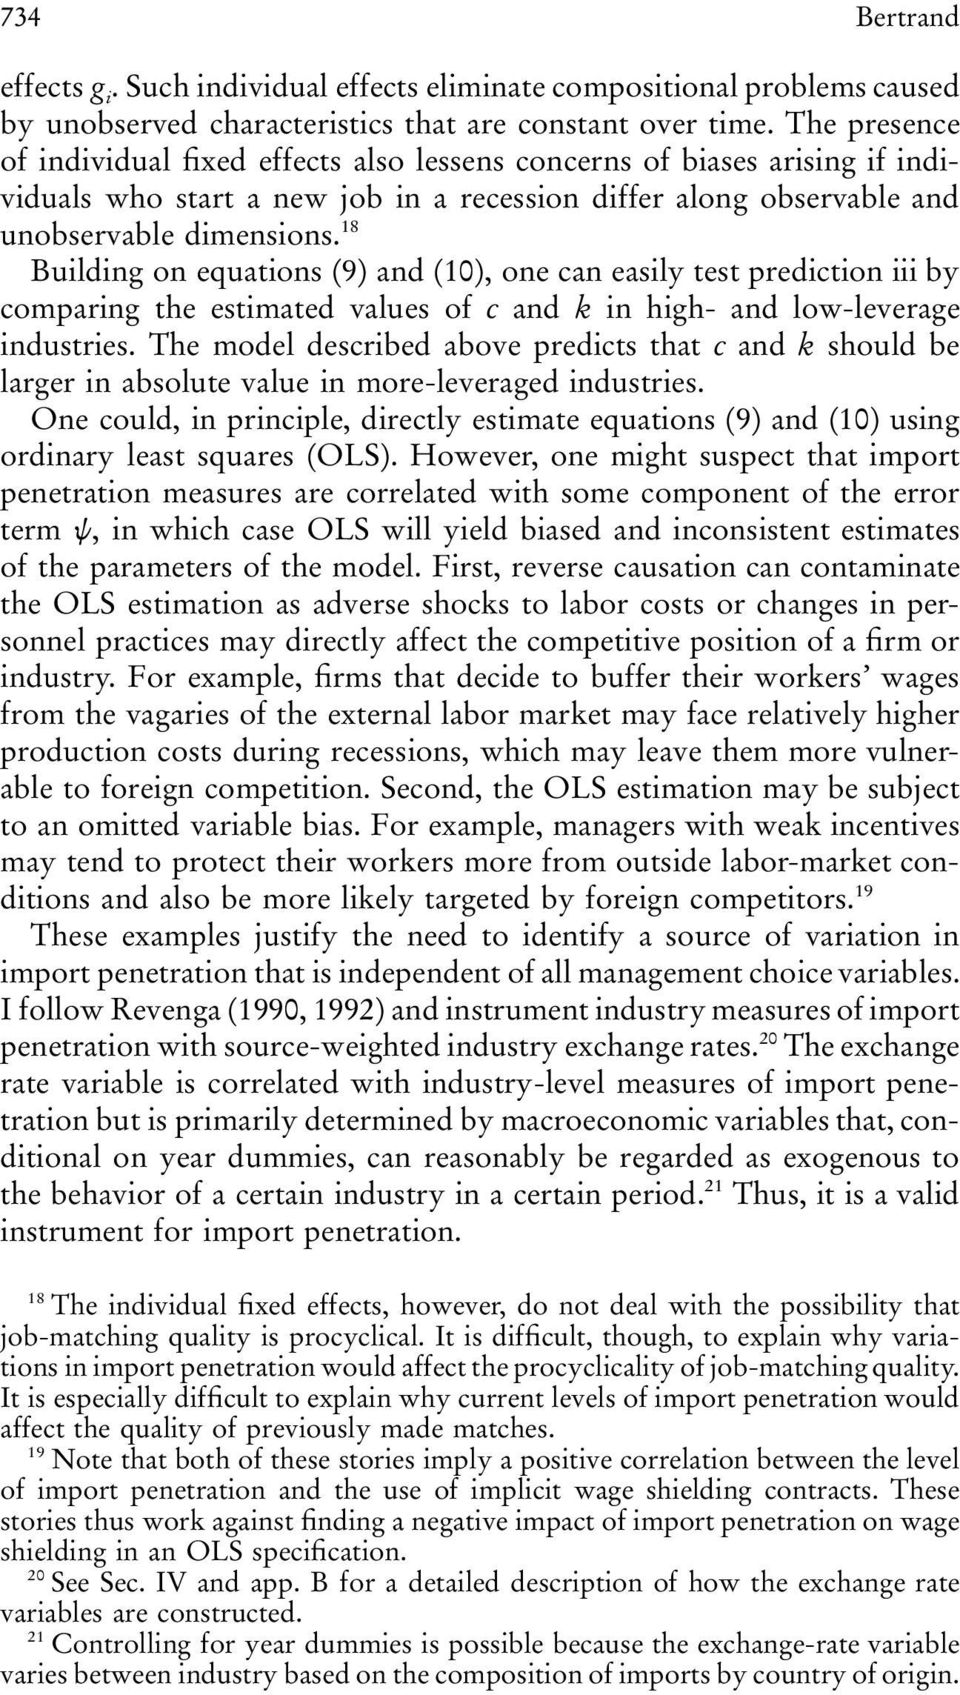 18 Building on equations (9) and (10), one an easily test predition iii by omparing the estimated values of and k in high- and low-leverage industries.